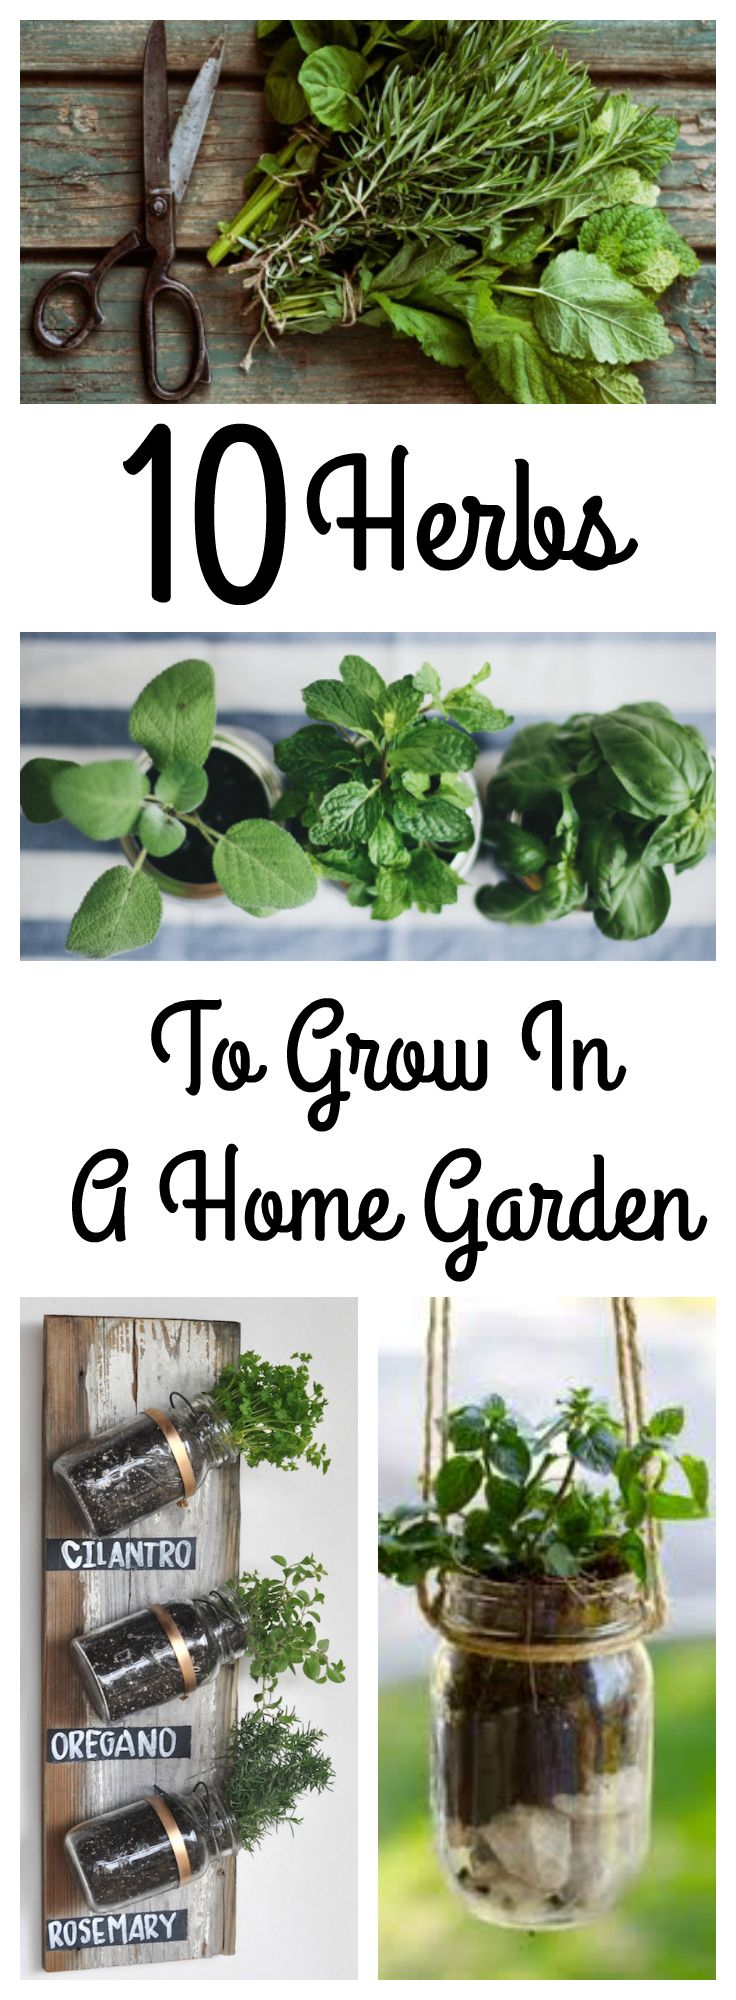 Why buy these from the store when you can grow them fresh in your own home garden? 10 easy and aromatic herbs perfect for growing yourself in any climate!